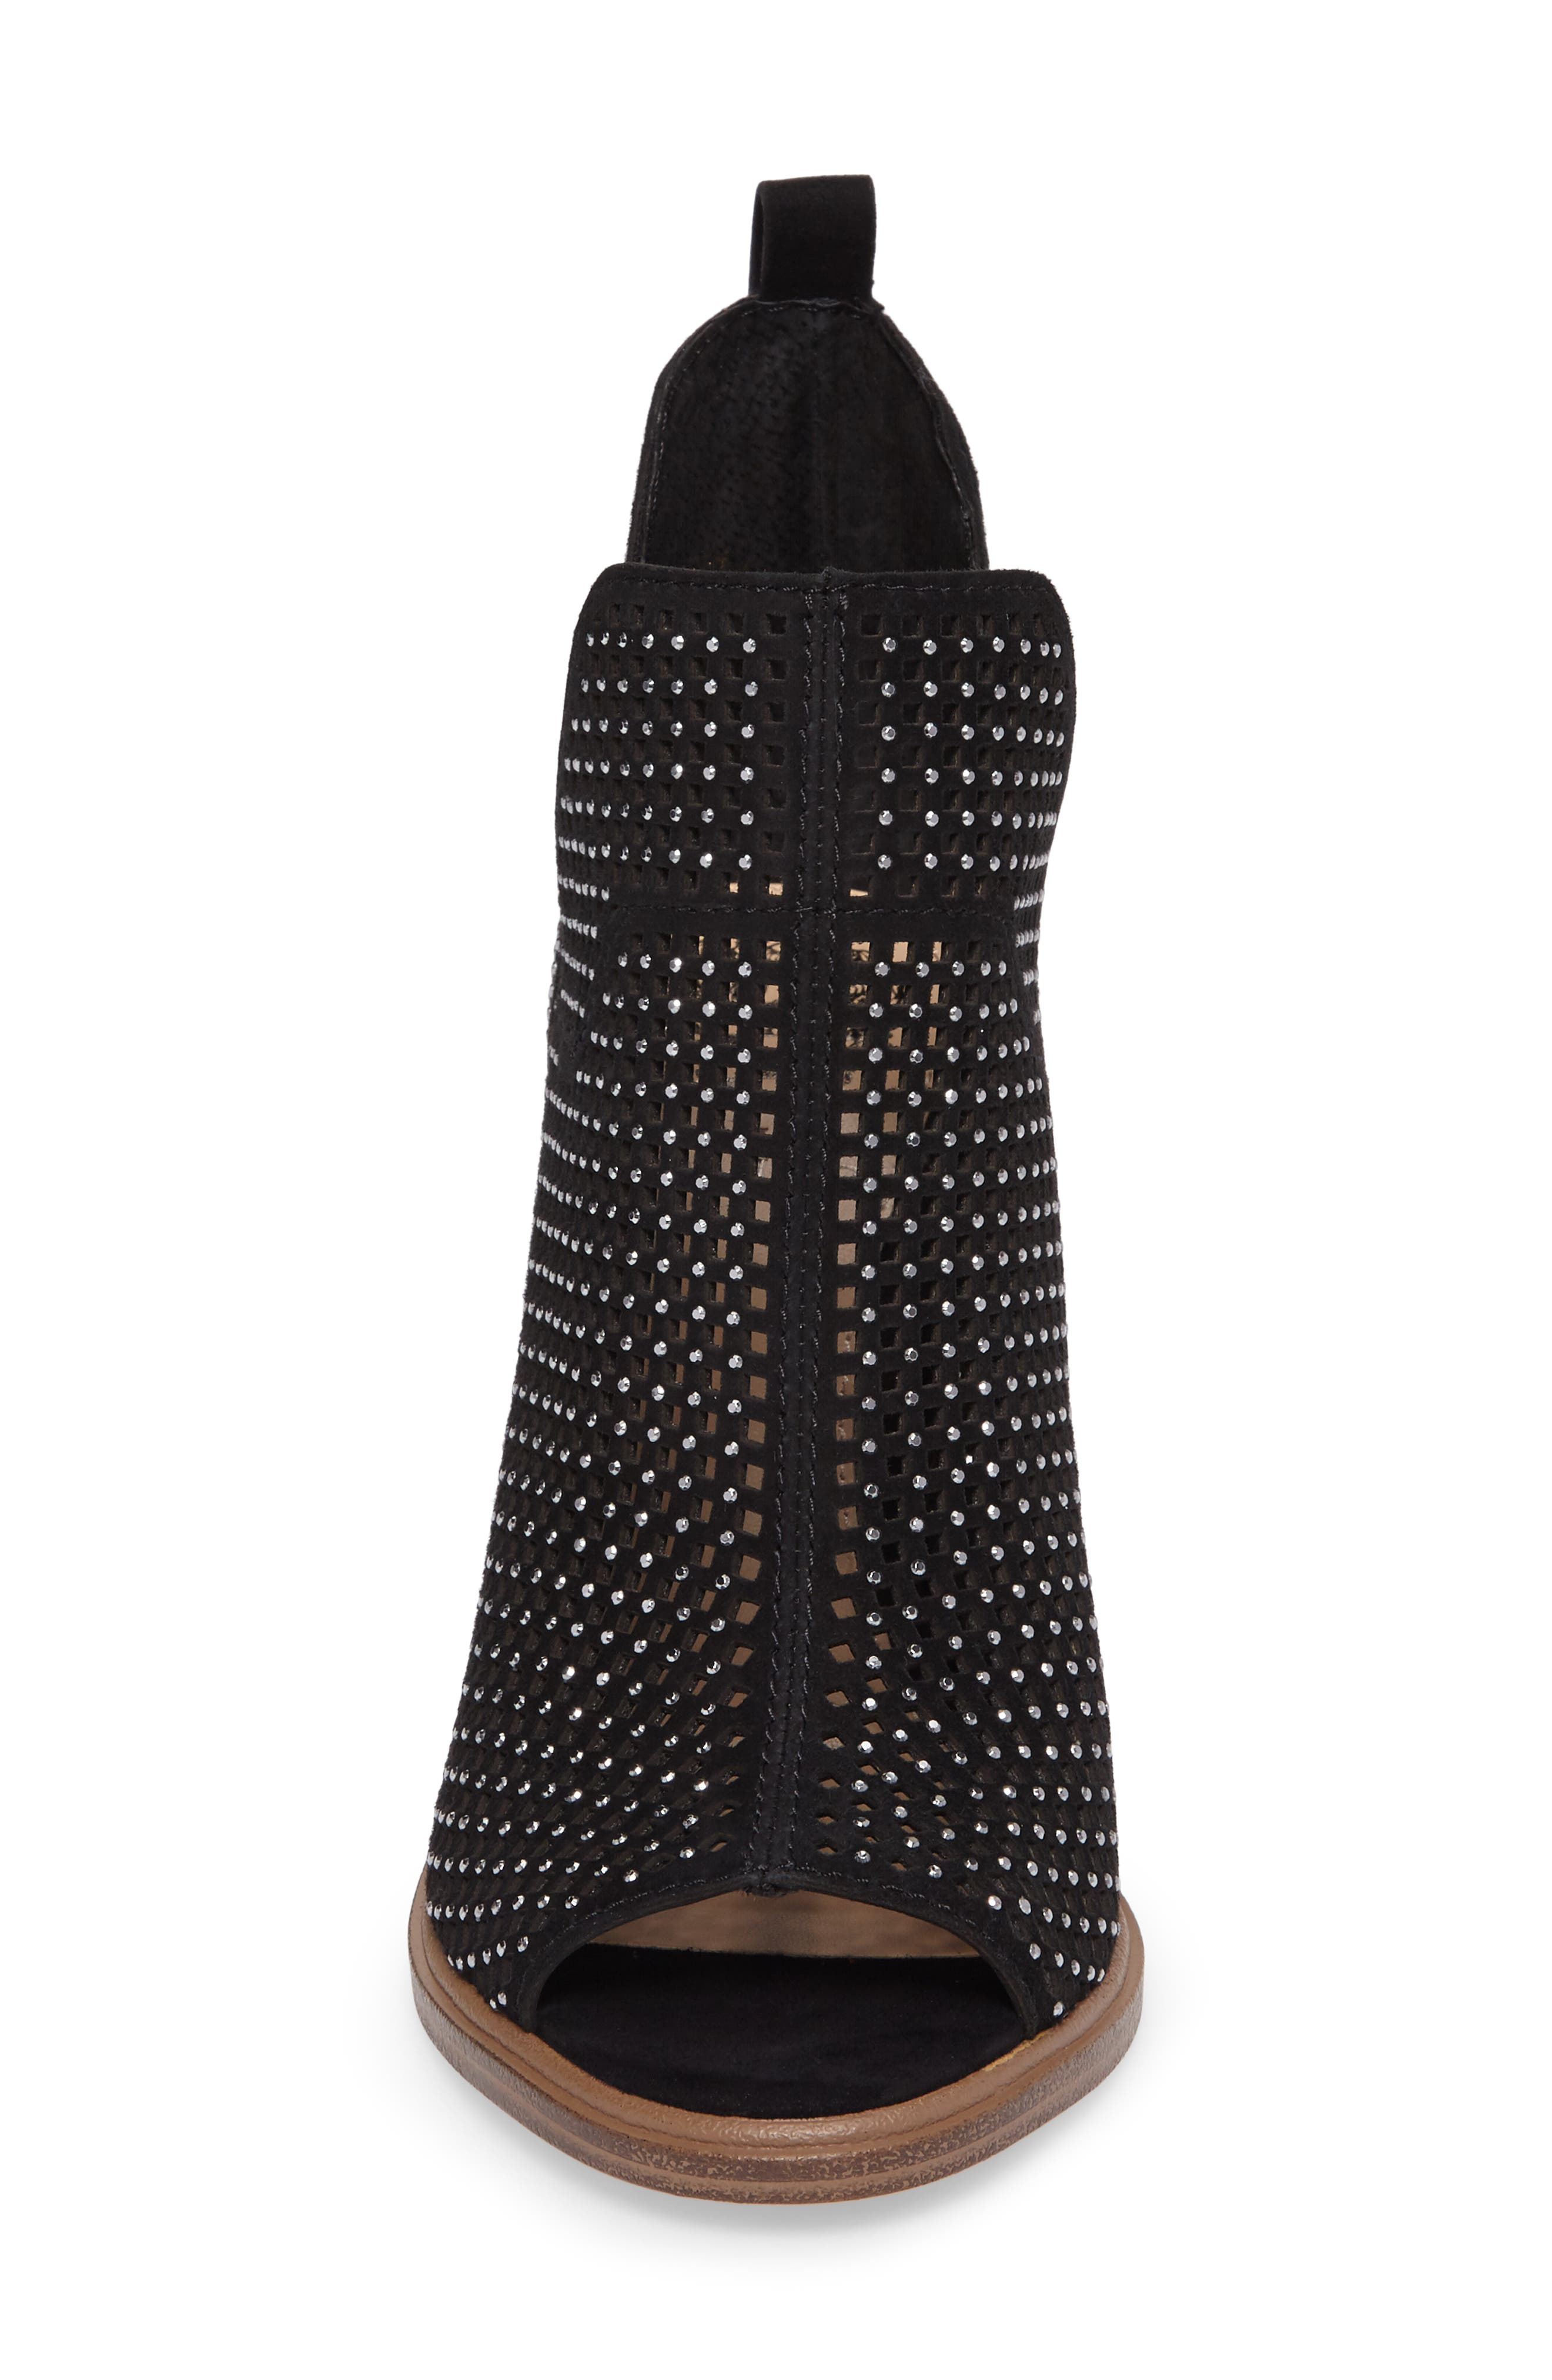 VINCE CAMUTO,                             Kiminni Open Toe Bootie,                             Alternate thumbnail 4, color,                             001